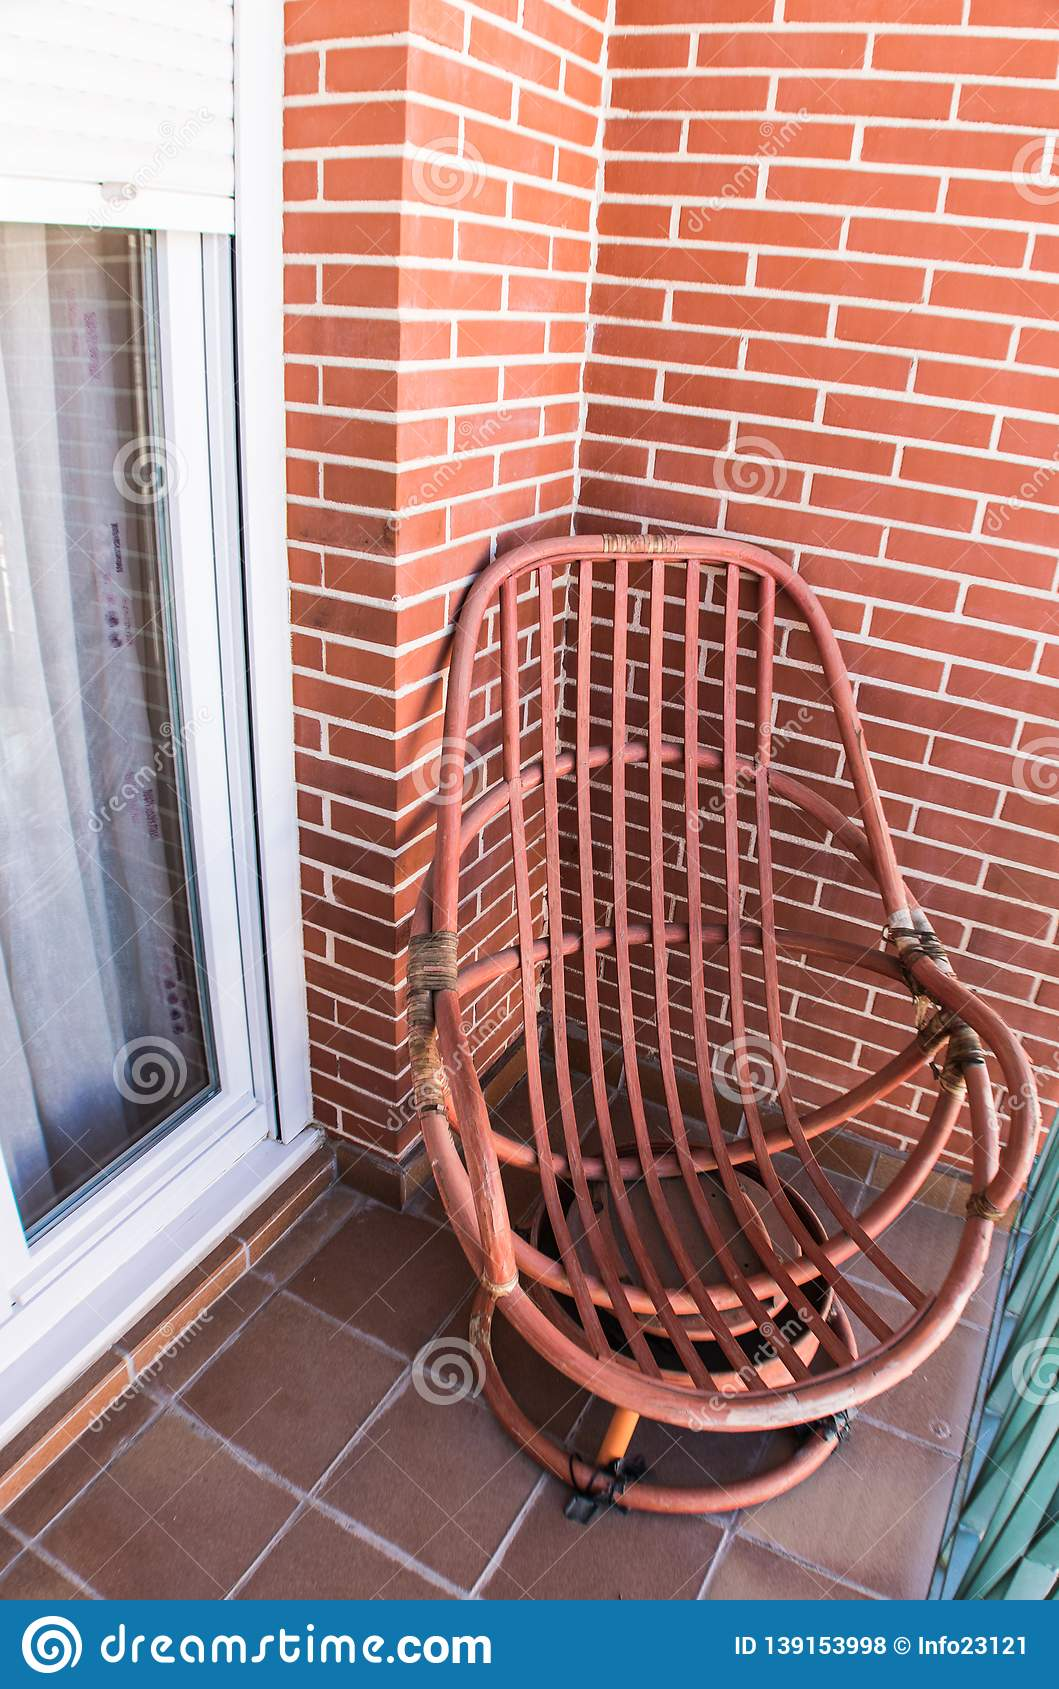 Wooden rocking chair on terrace